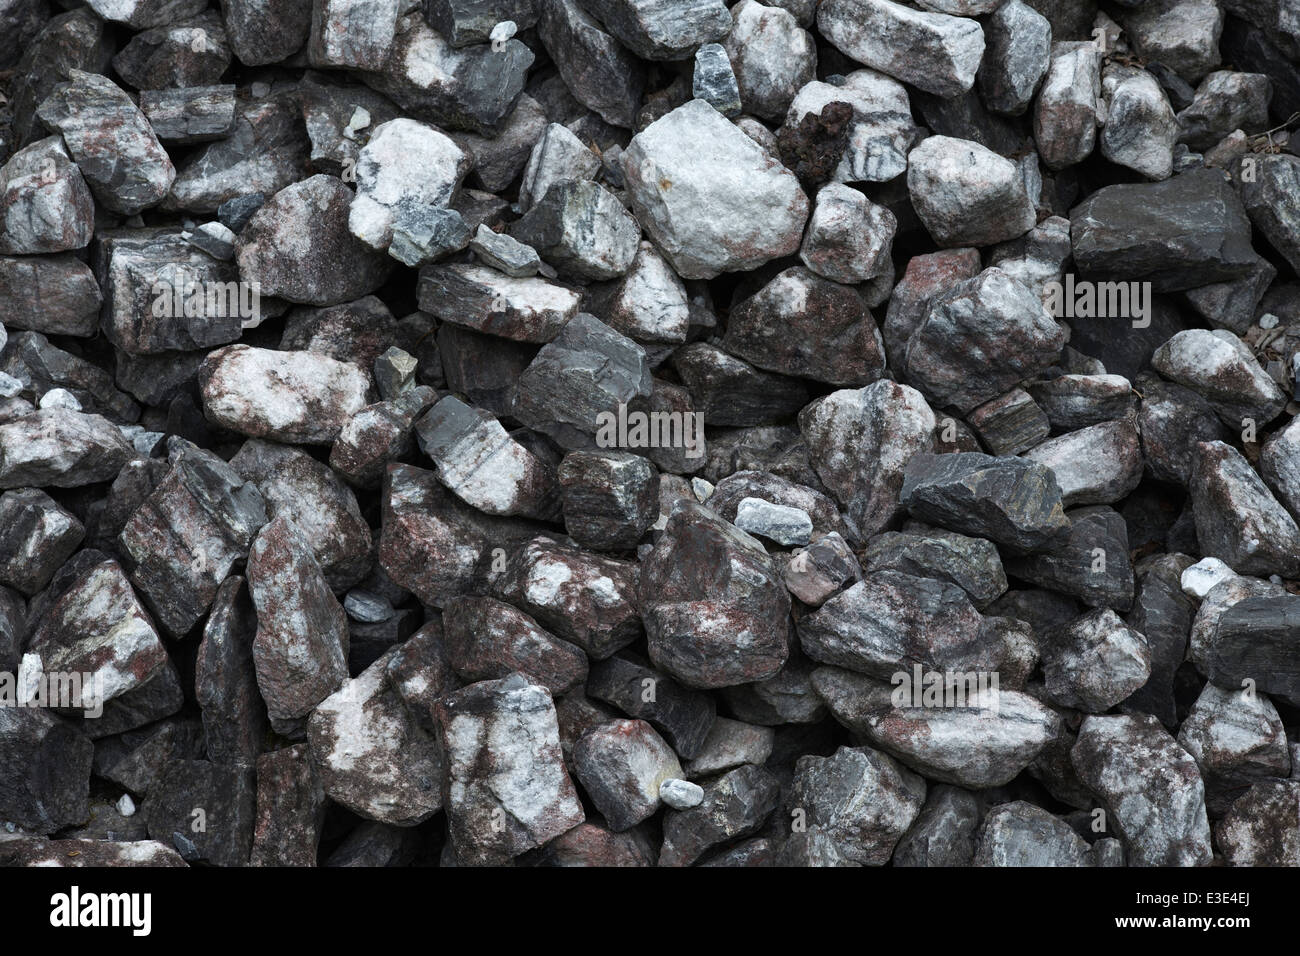 small marble stones in a quarry as background - Stock Image